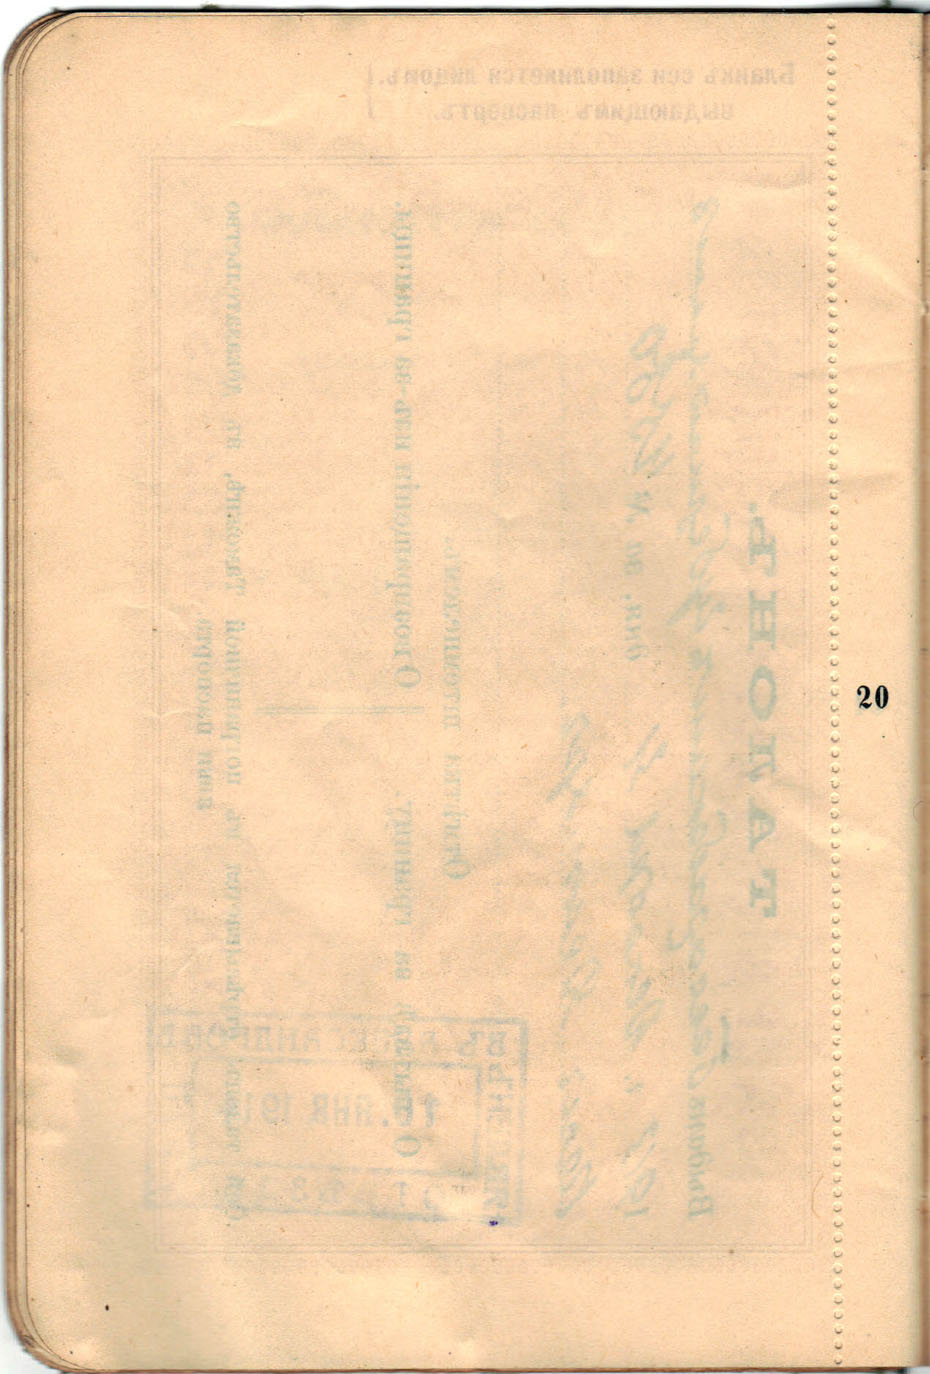 Polya's Russian Passport p20